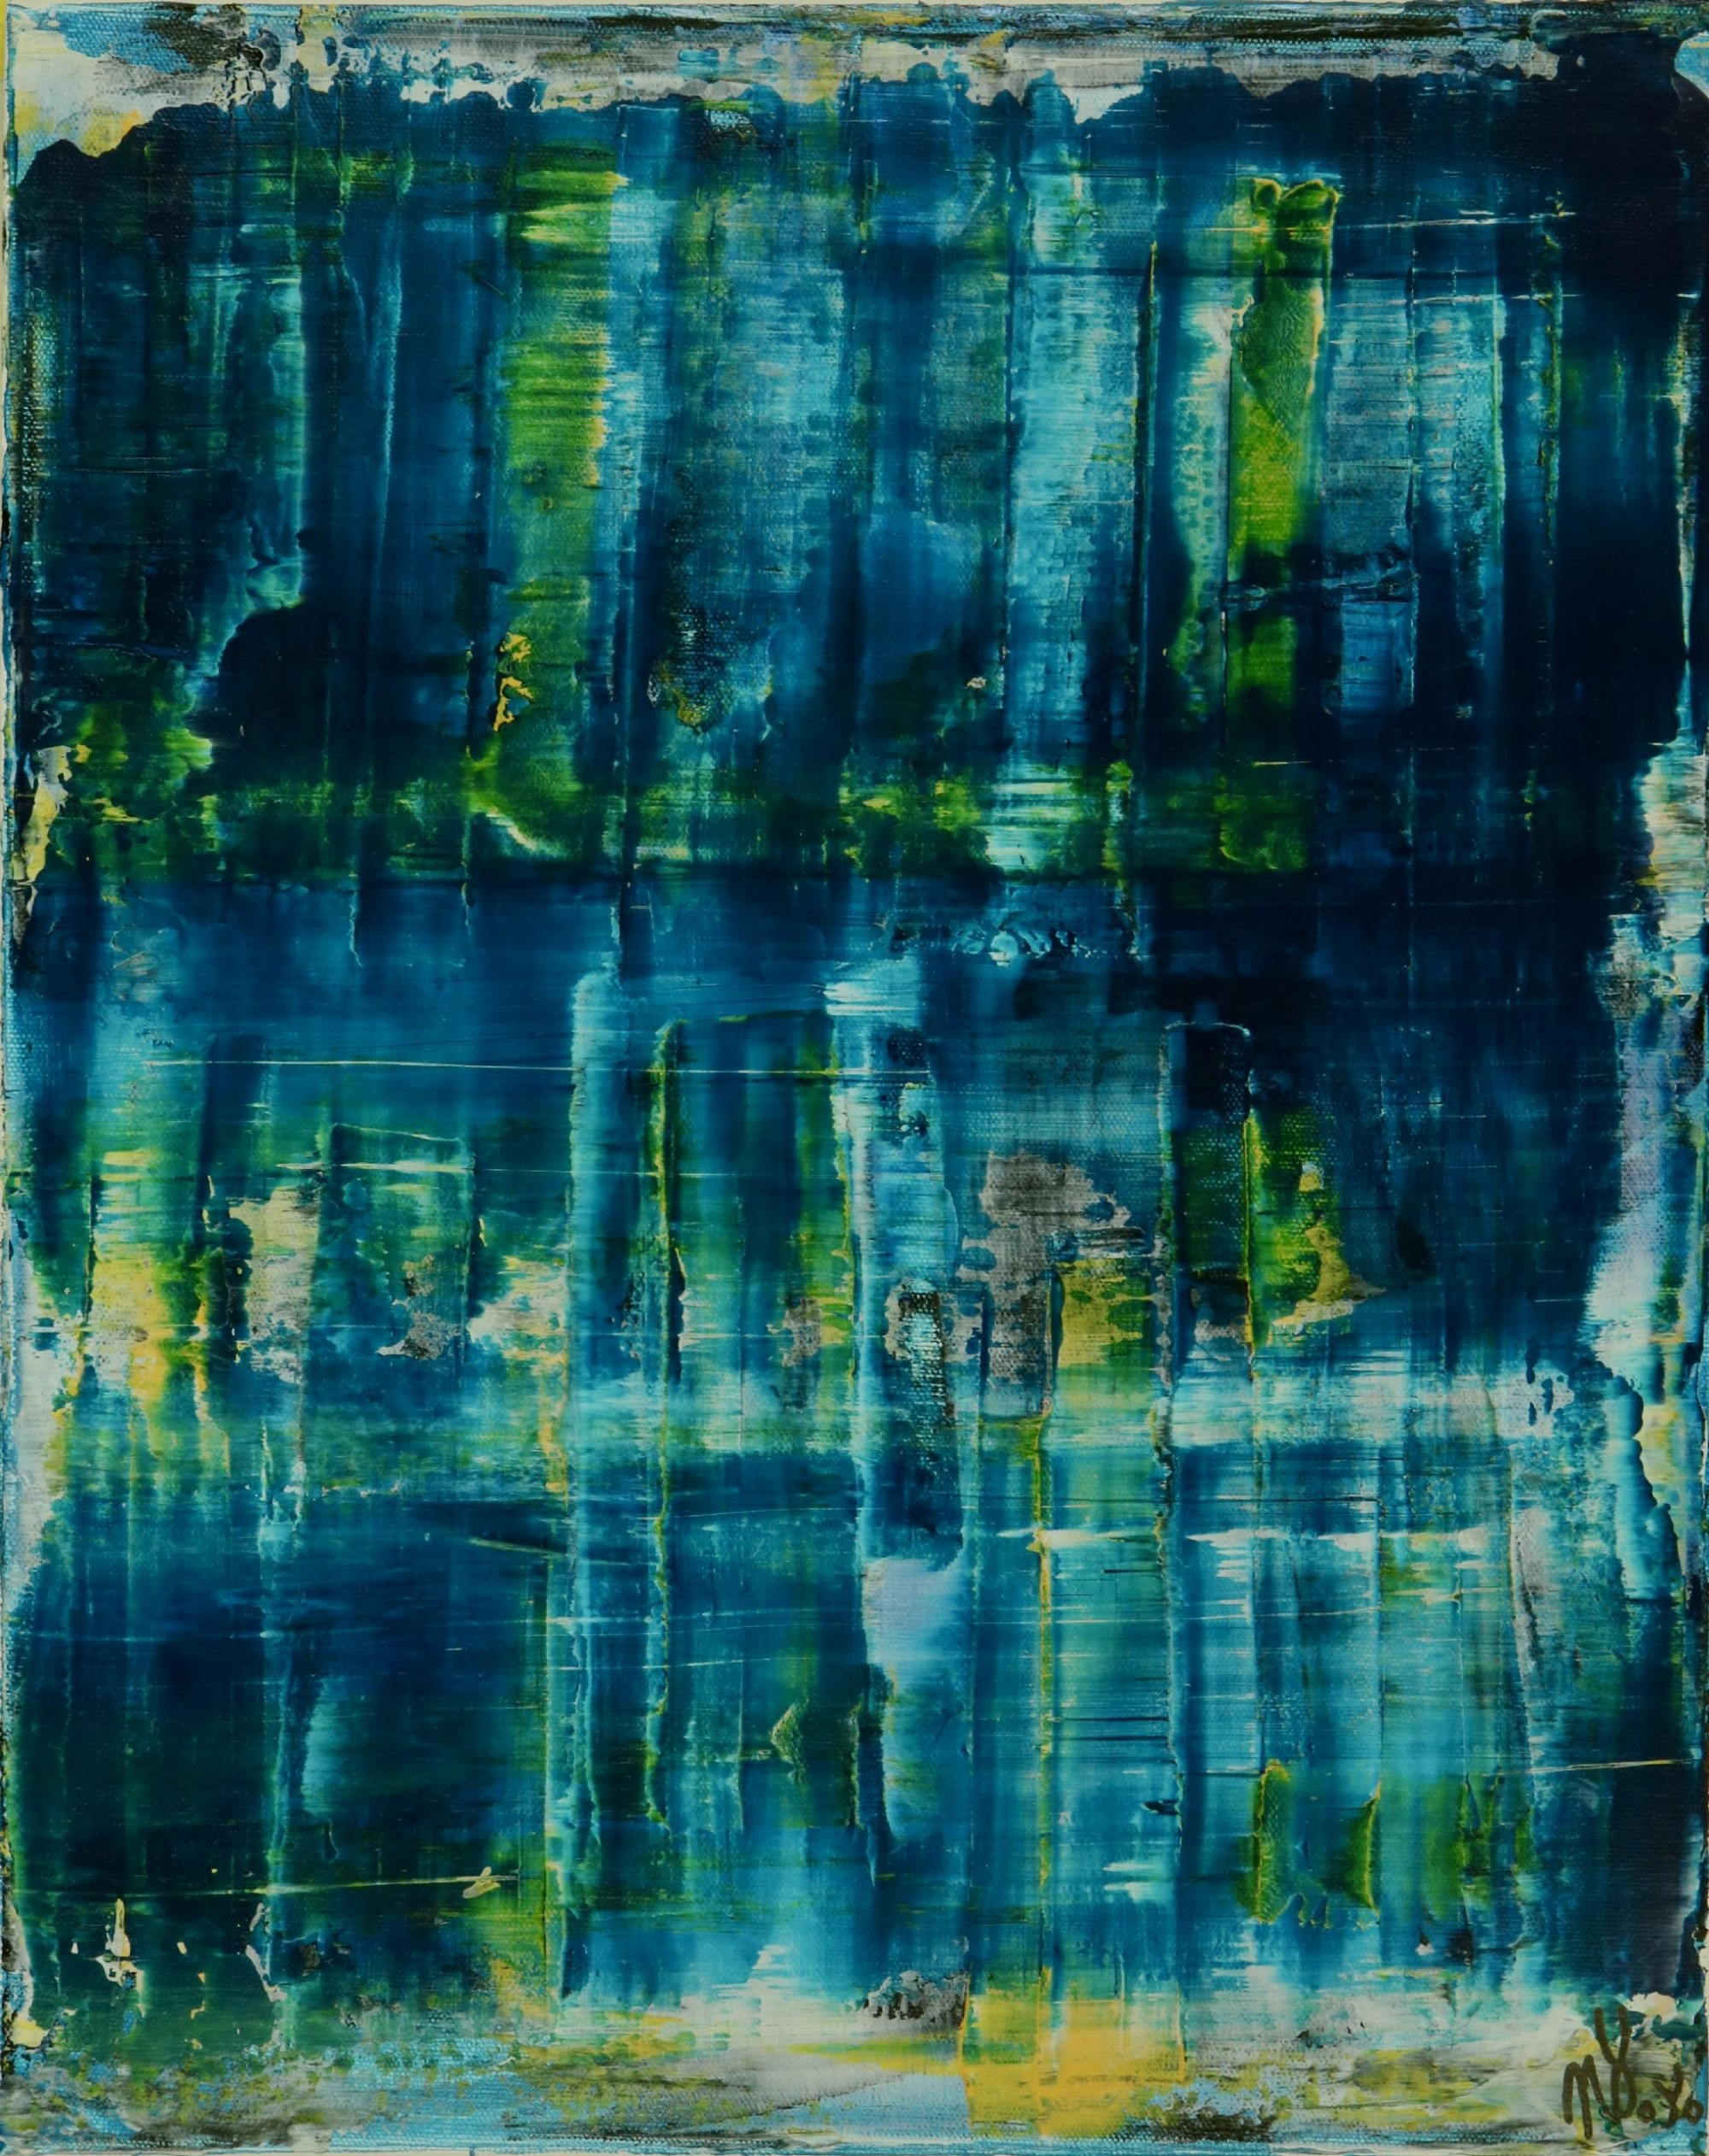 Full Canvas - Emerald Forest Spectra 1 by Nestor Toro